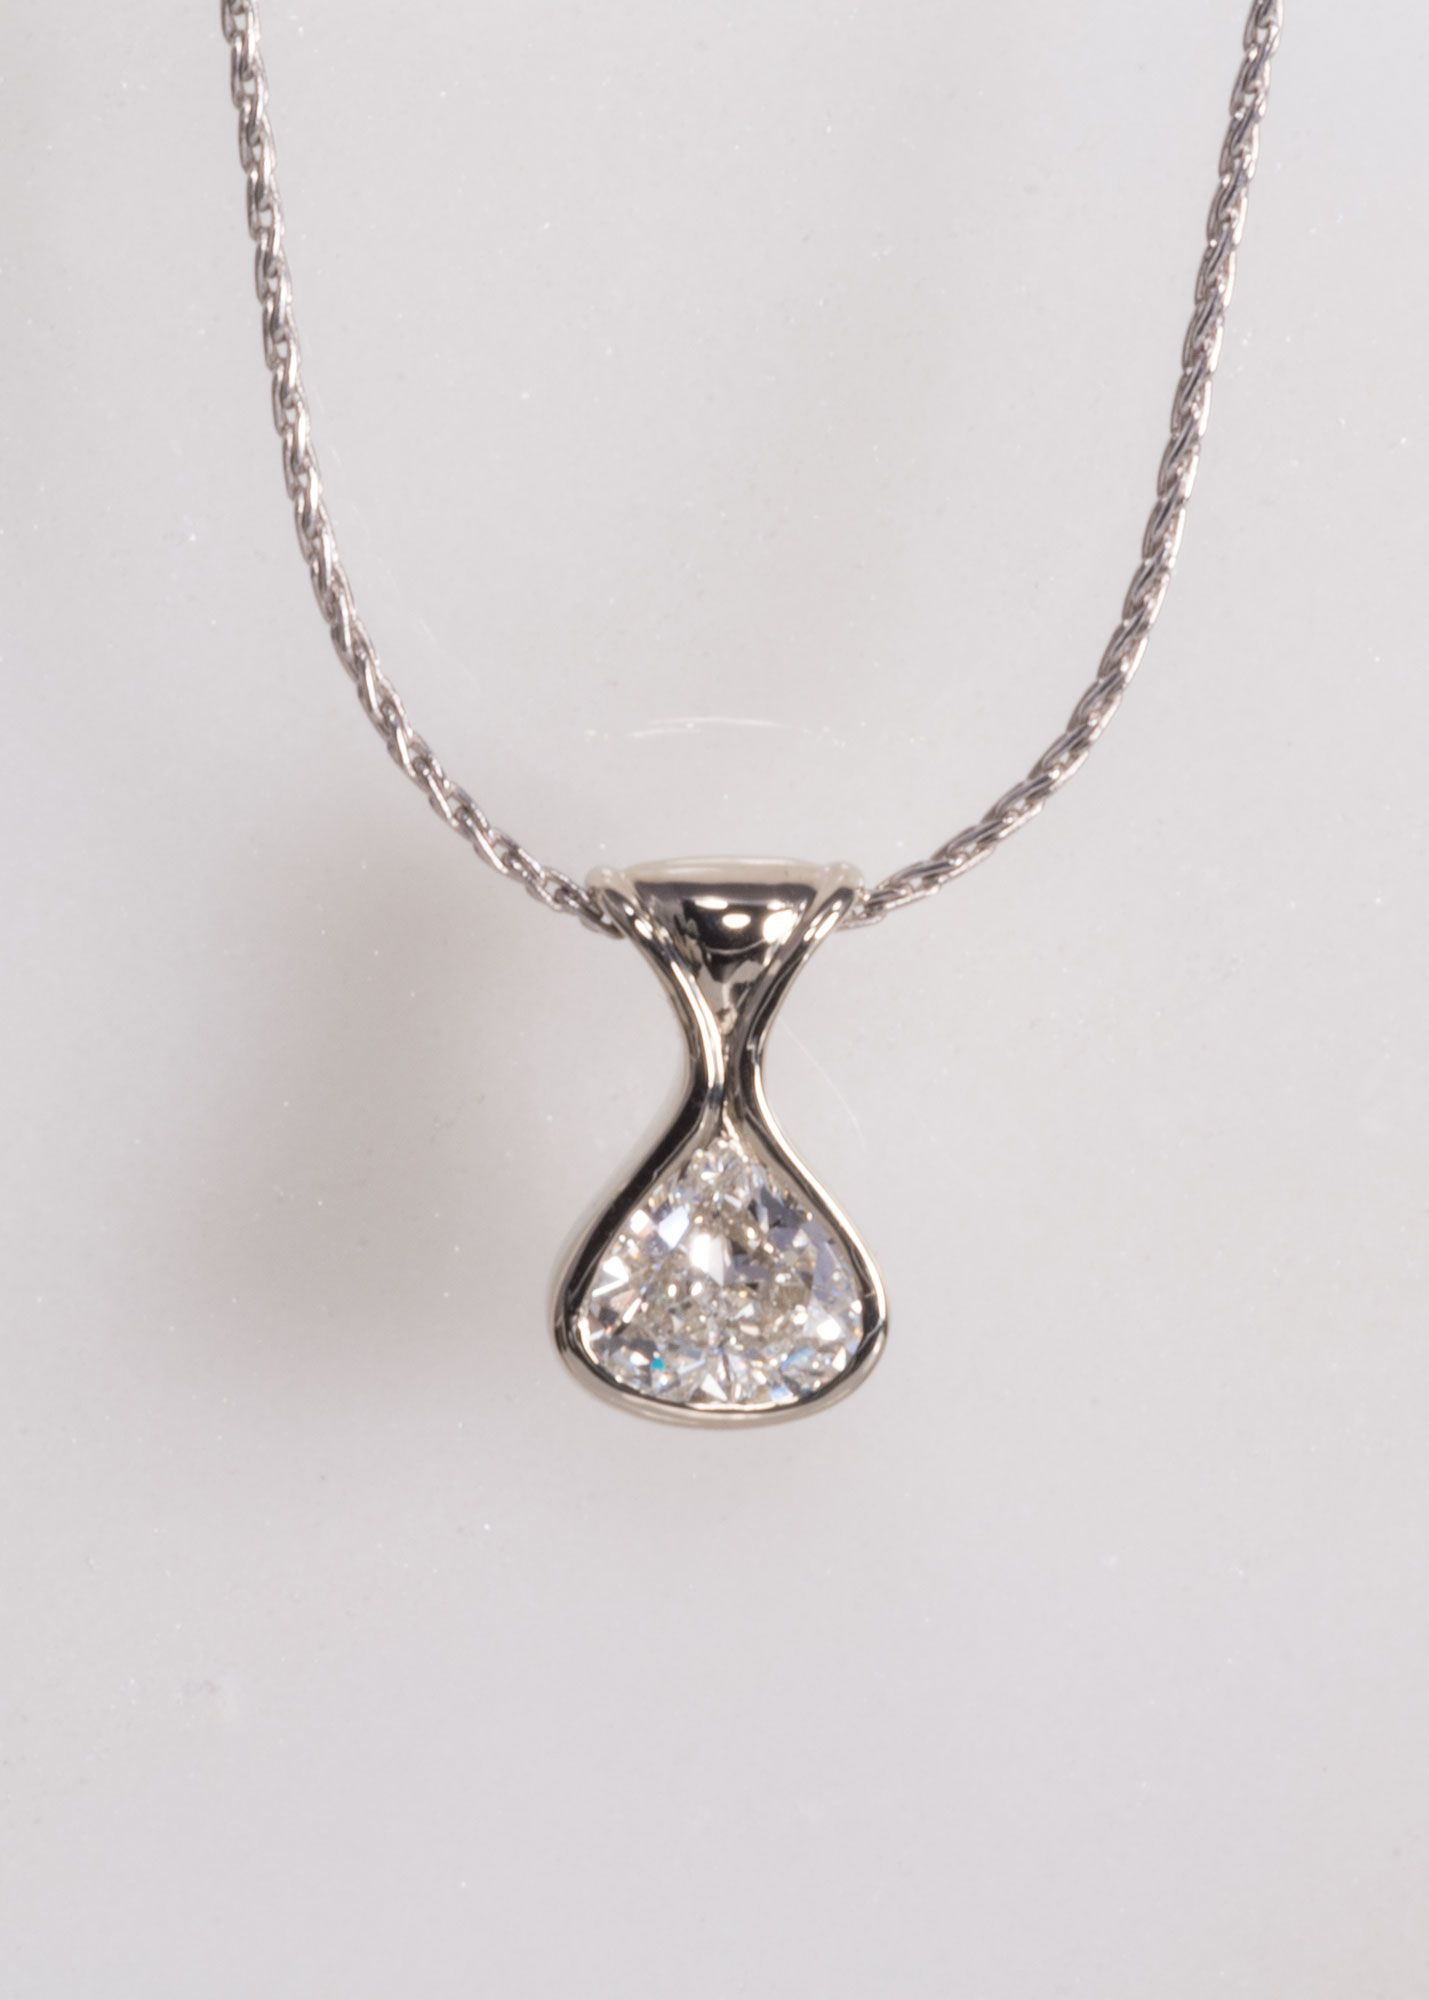 y pendant tear about shape details a gold pear dancing diamond chain ct shaped necklace drop itm